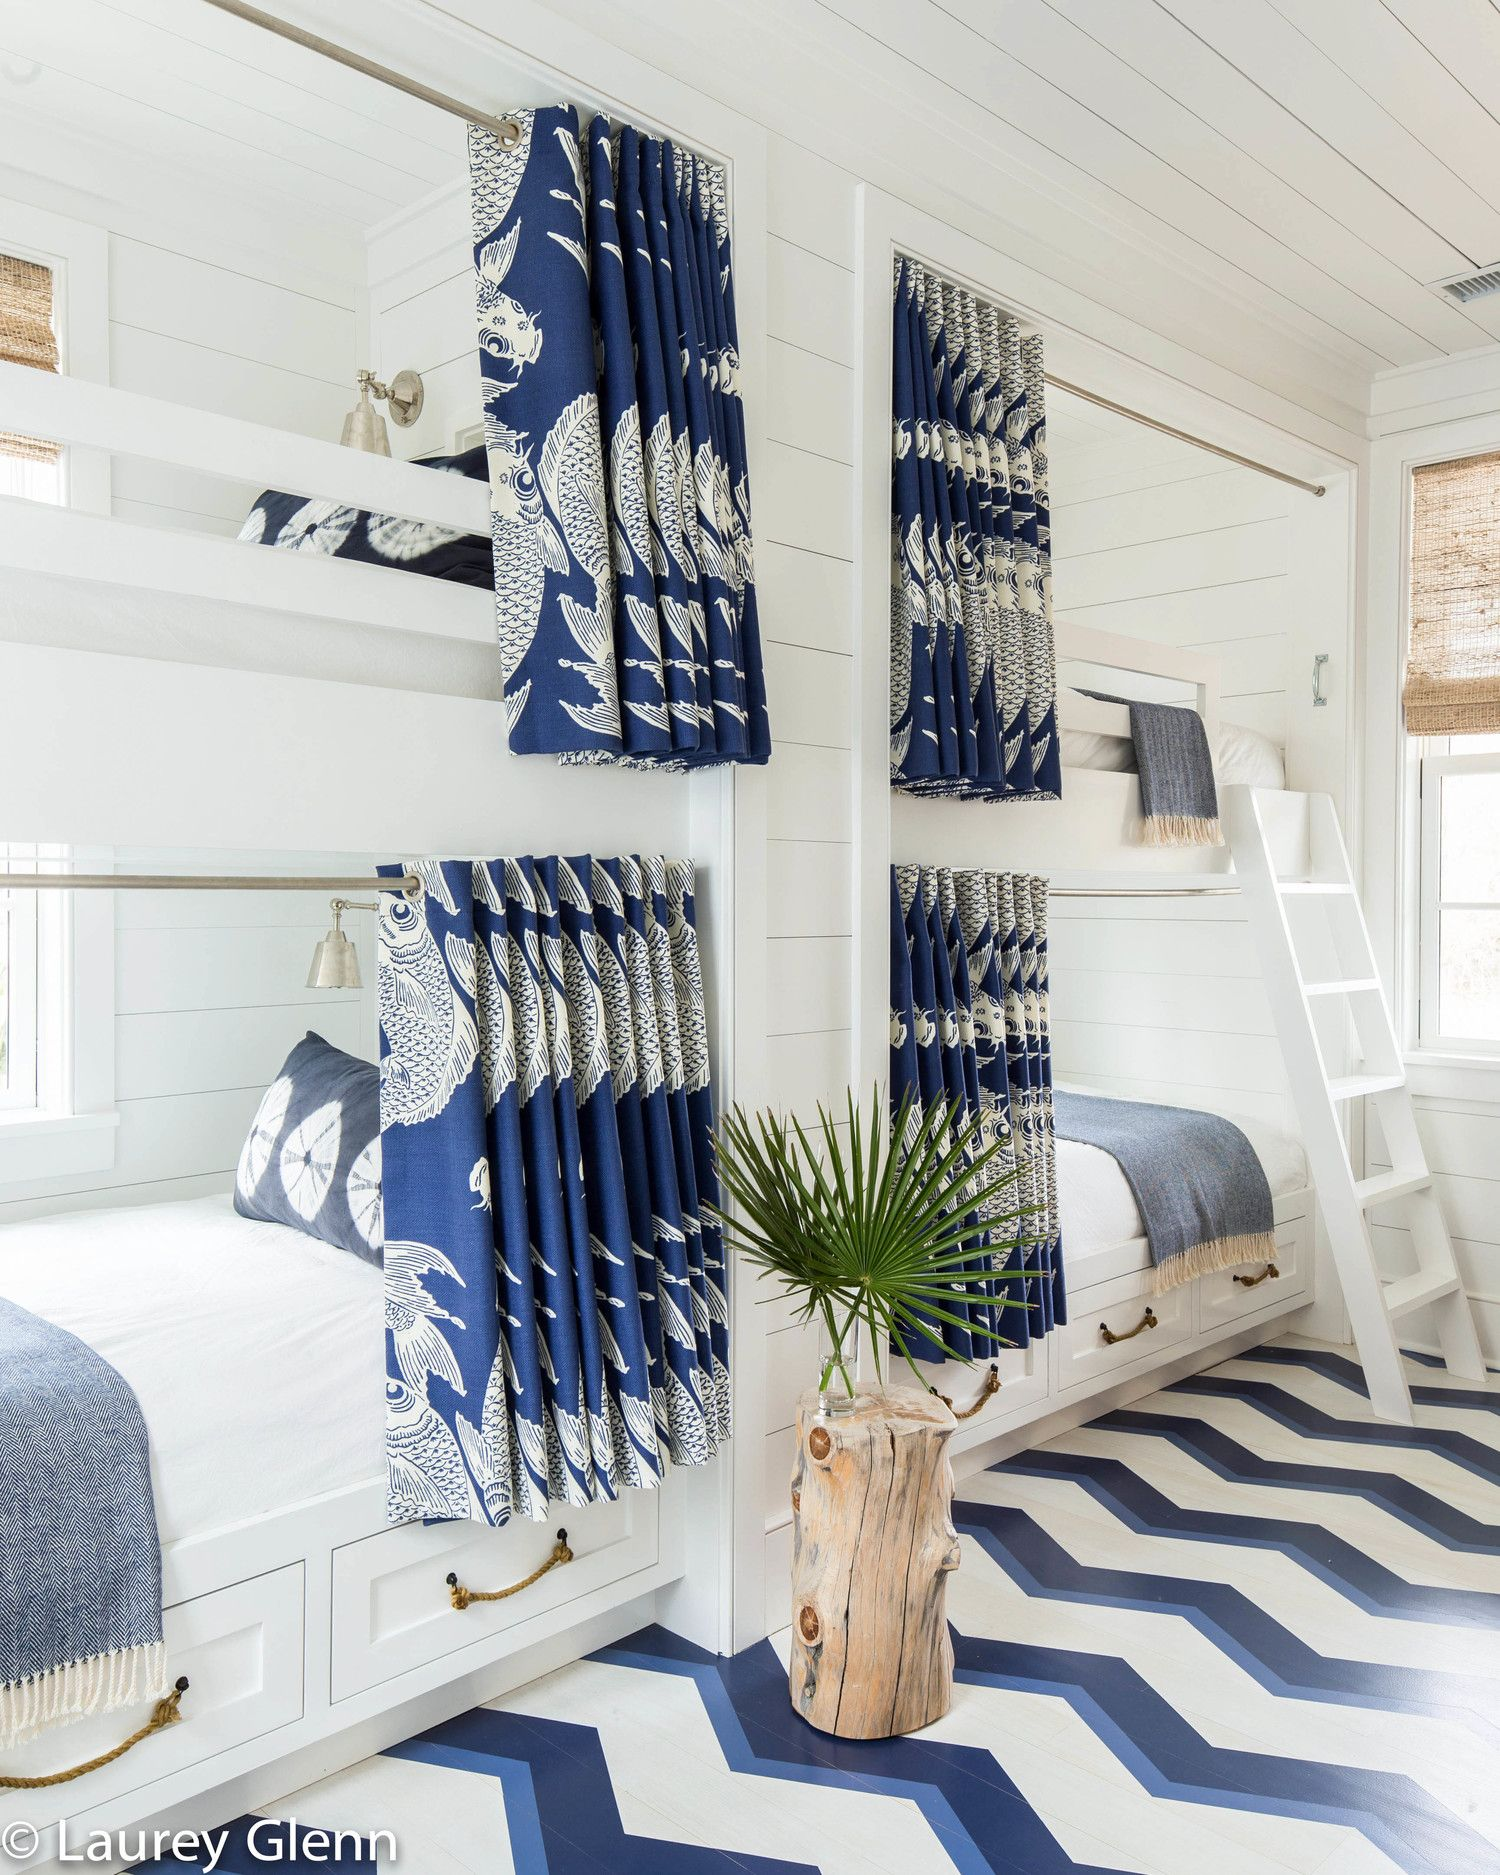 Blue And White Bunk Room By Homes Editor Ellen McGauley As Clever Design  Ideas Go, Patterned Flooring In Beach Houses Ranks Right Up There With Bunk  Beds ...